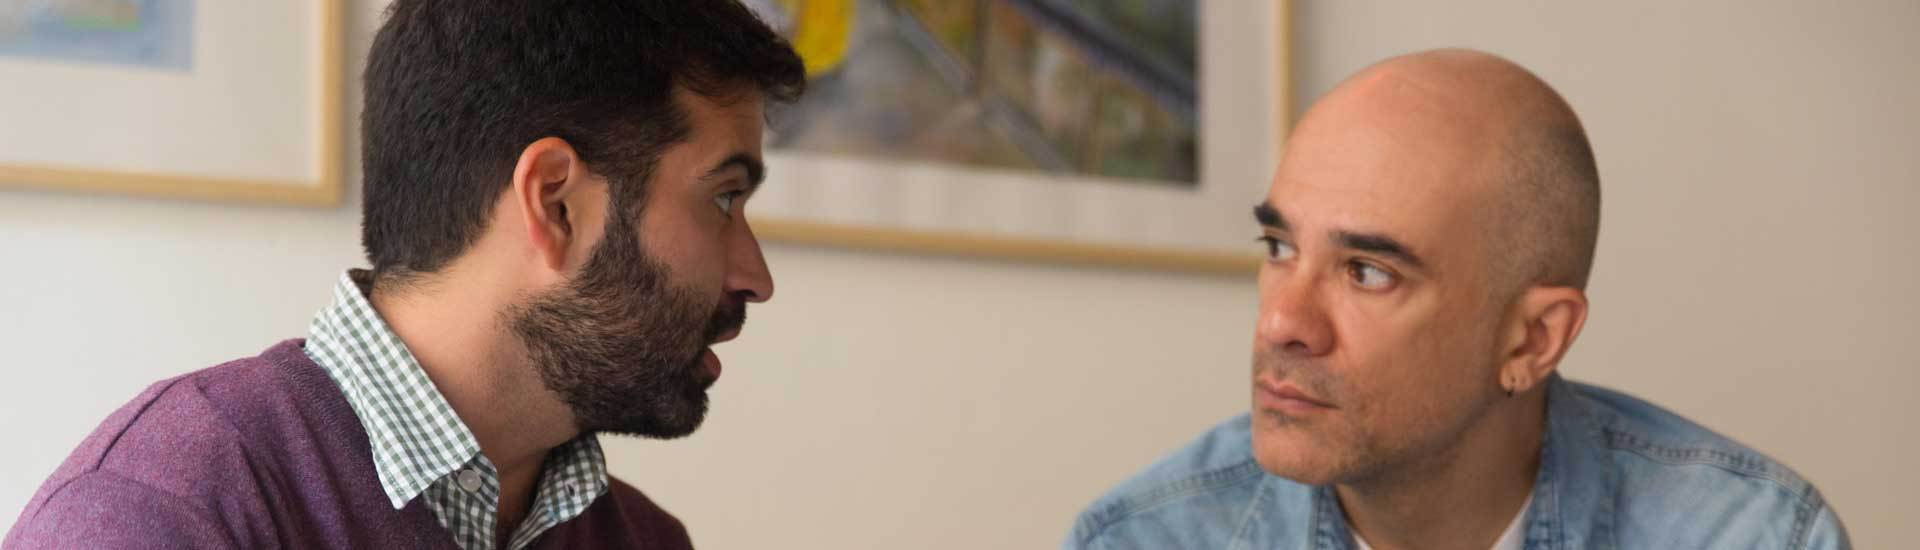 2Adults-having-serious-convo_1920x550